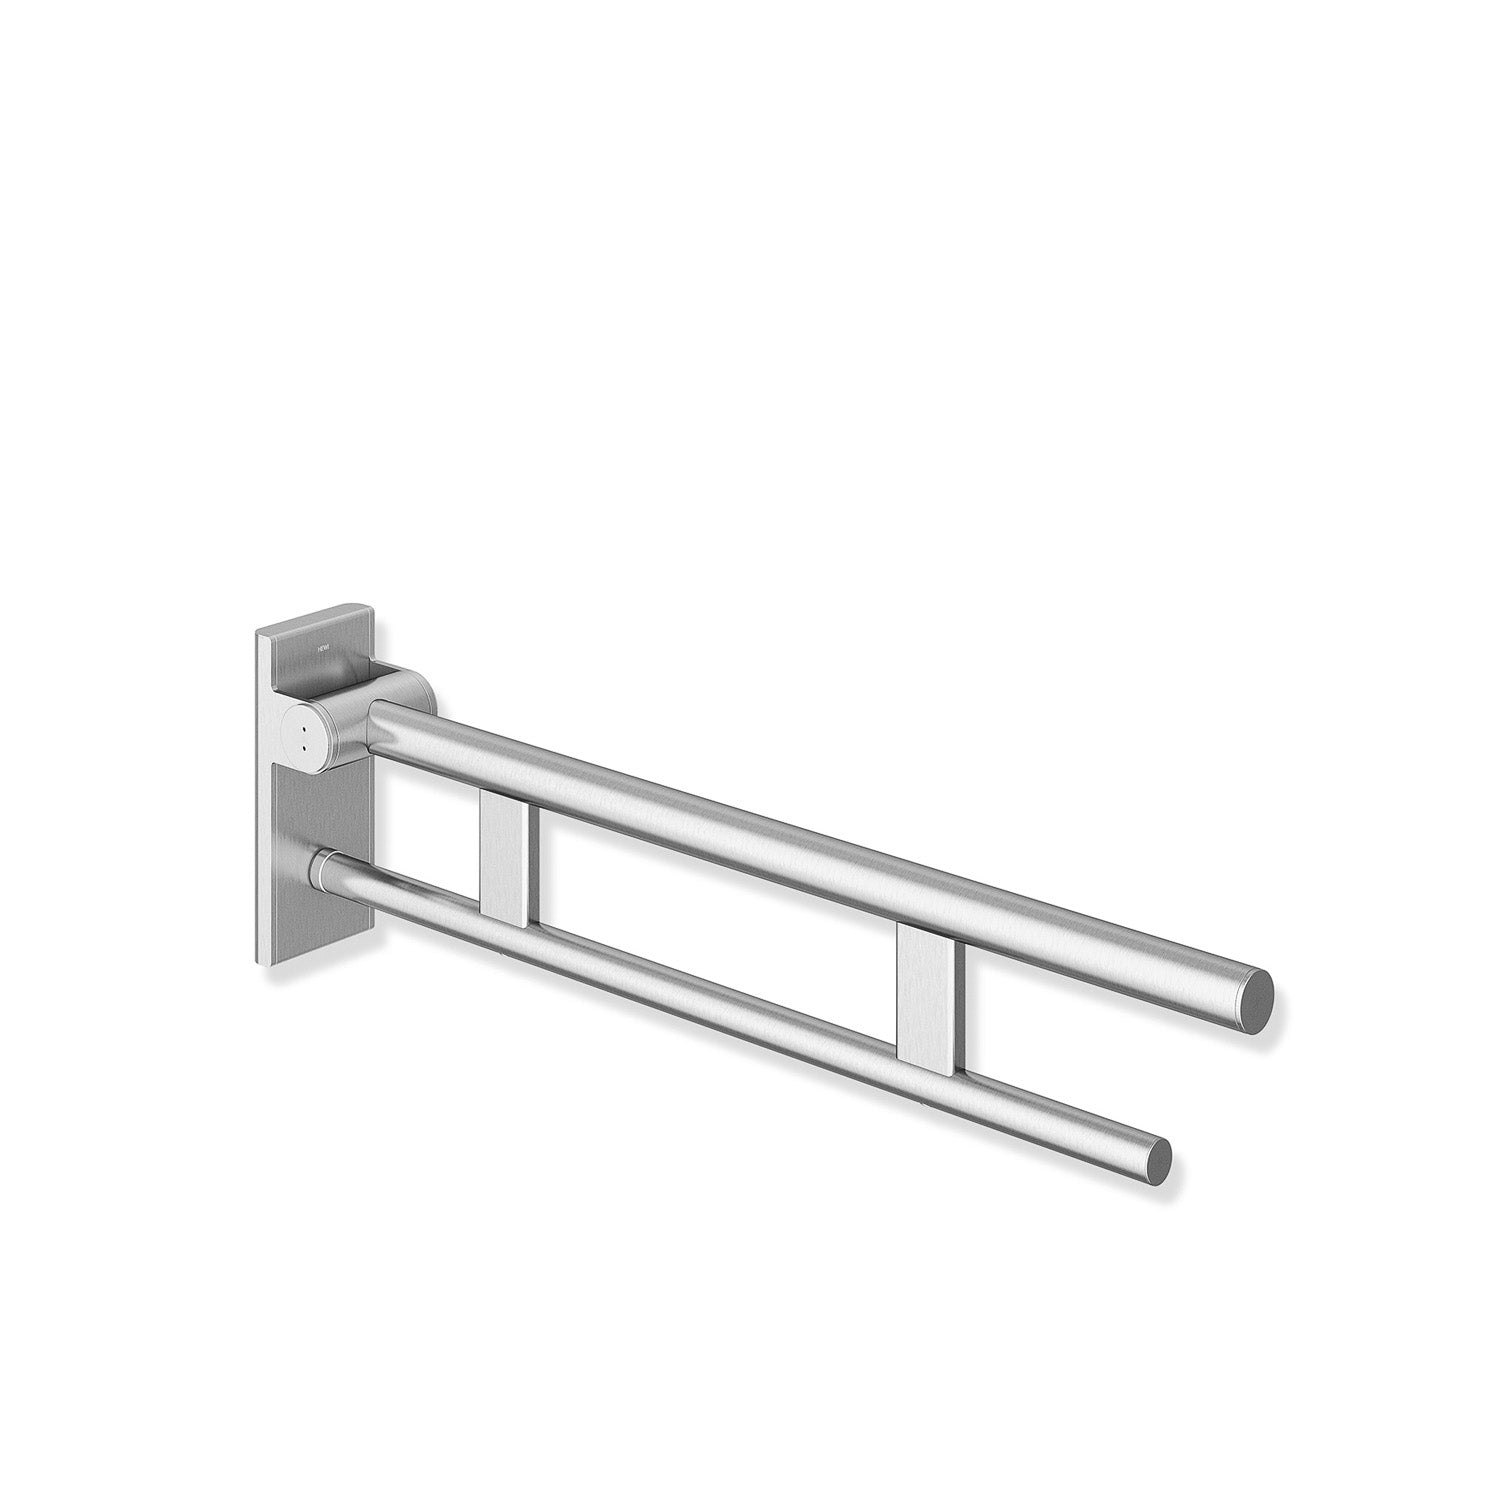 700mm Freestyle Removable Hinged Grab Rail Set with a satin steel finish on a white background